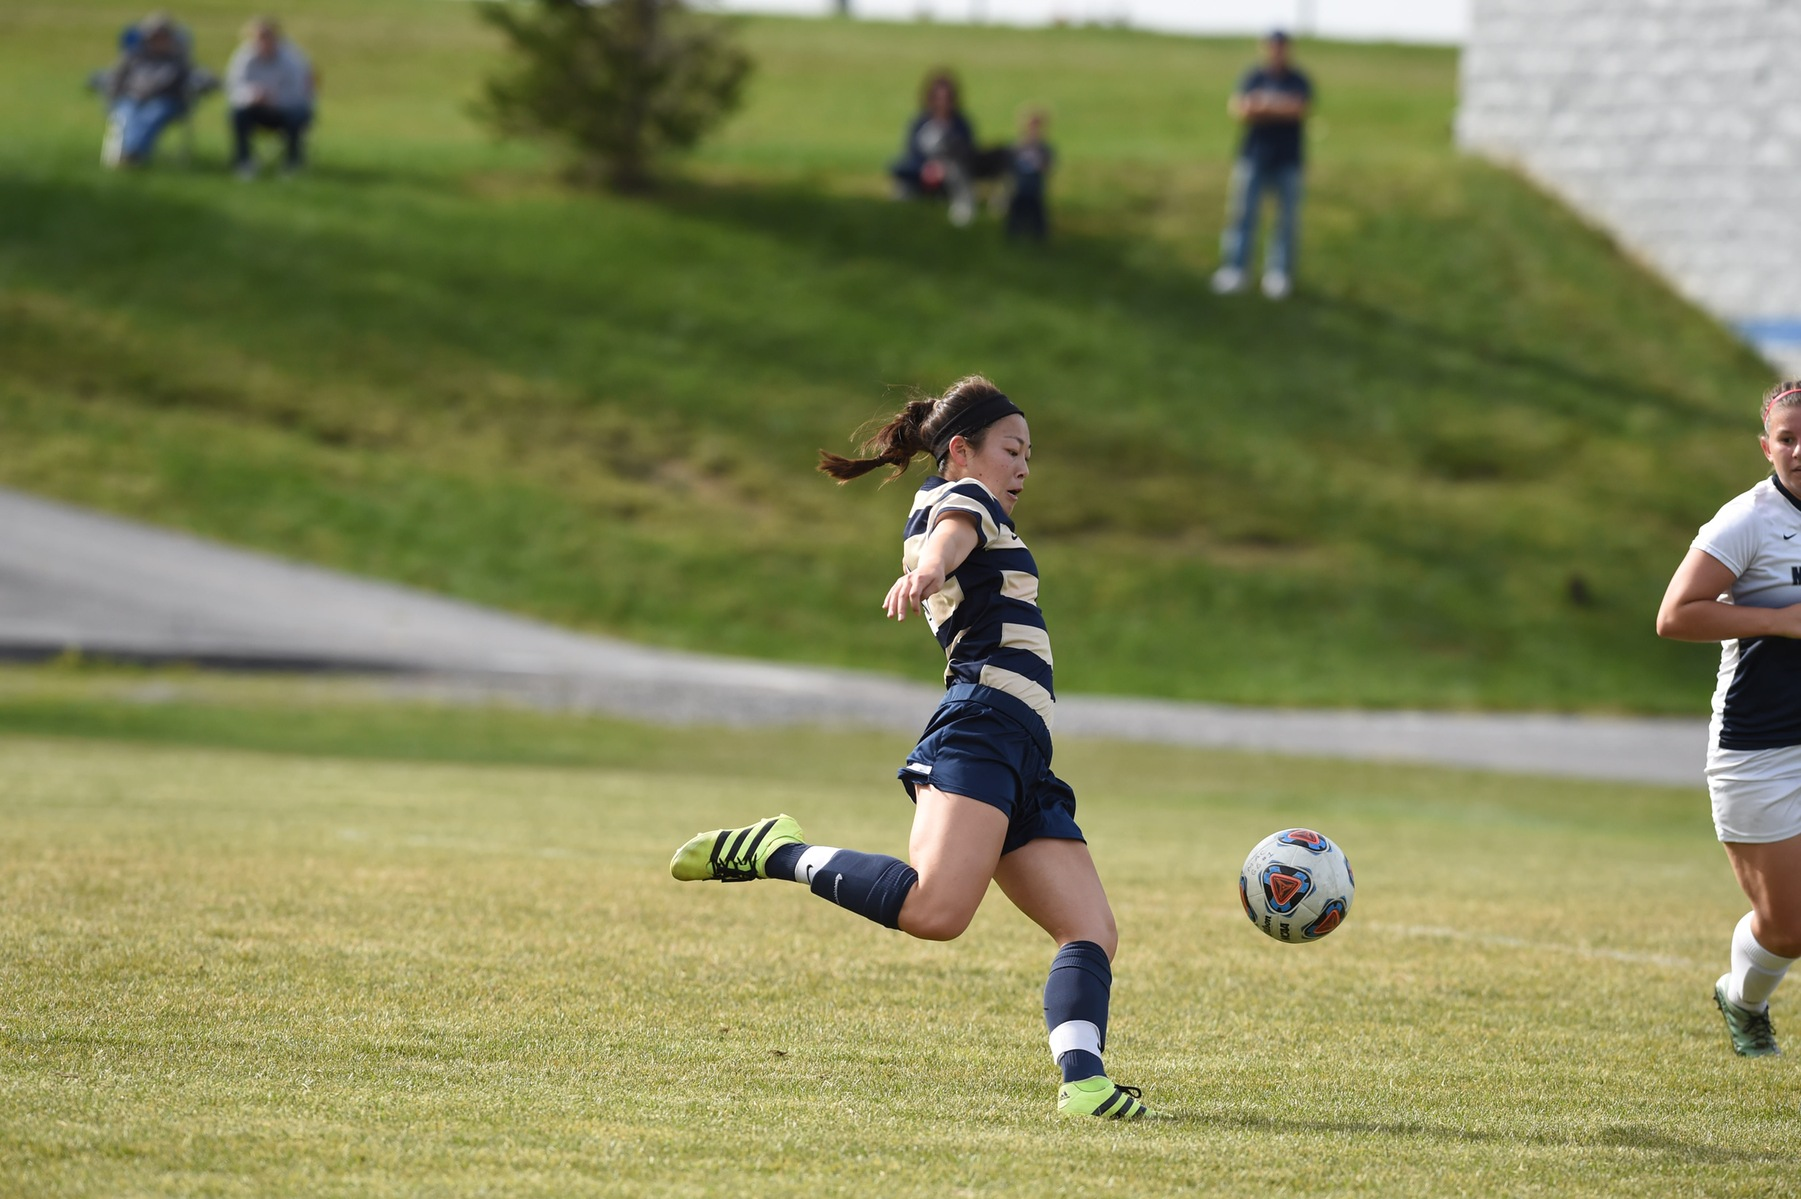 Juniata Wins in Overtime Against Goucher